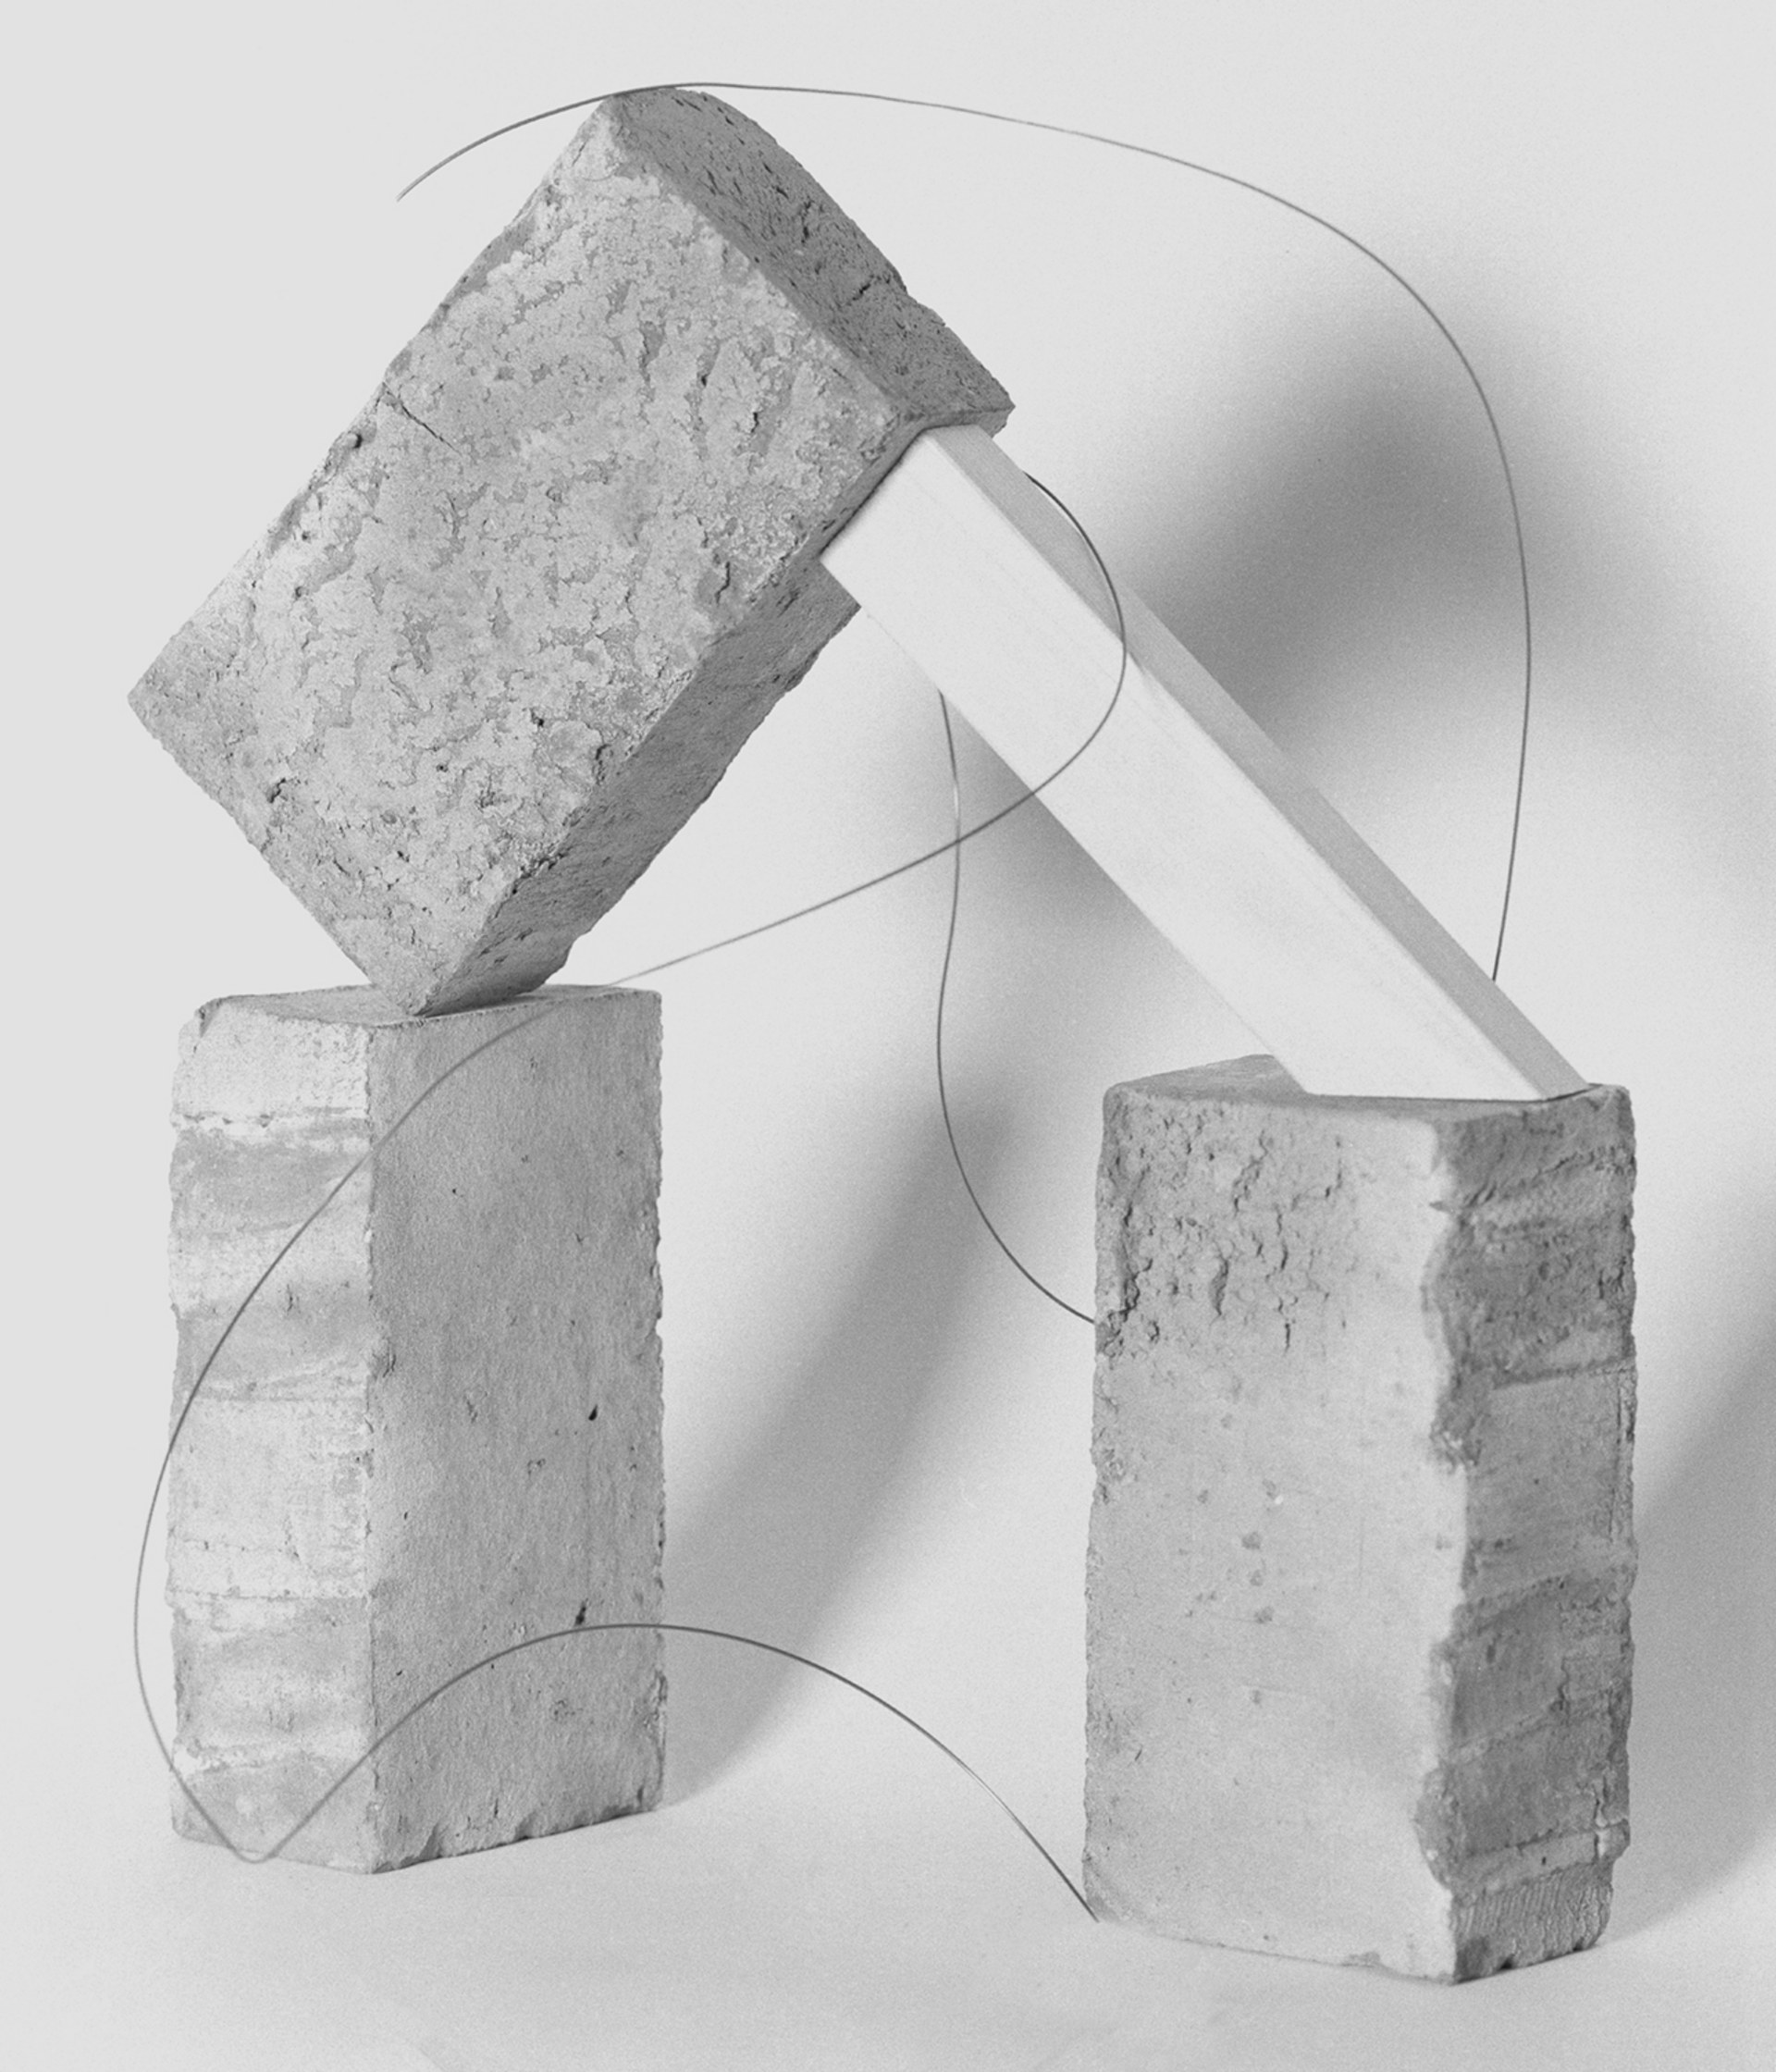 Construction (bricks, wire and wood), 2021 — 64x75cm, edition of 5 + 2AP